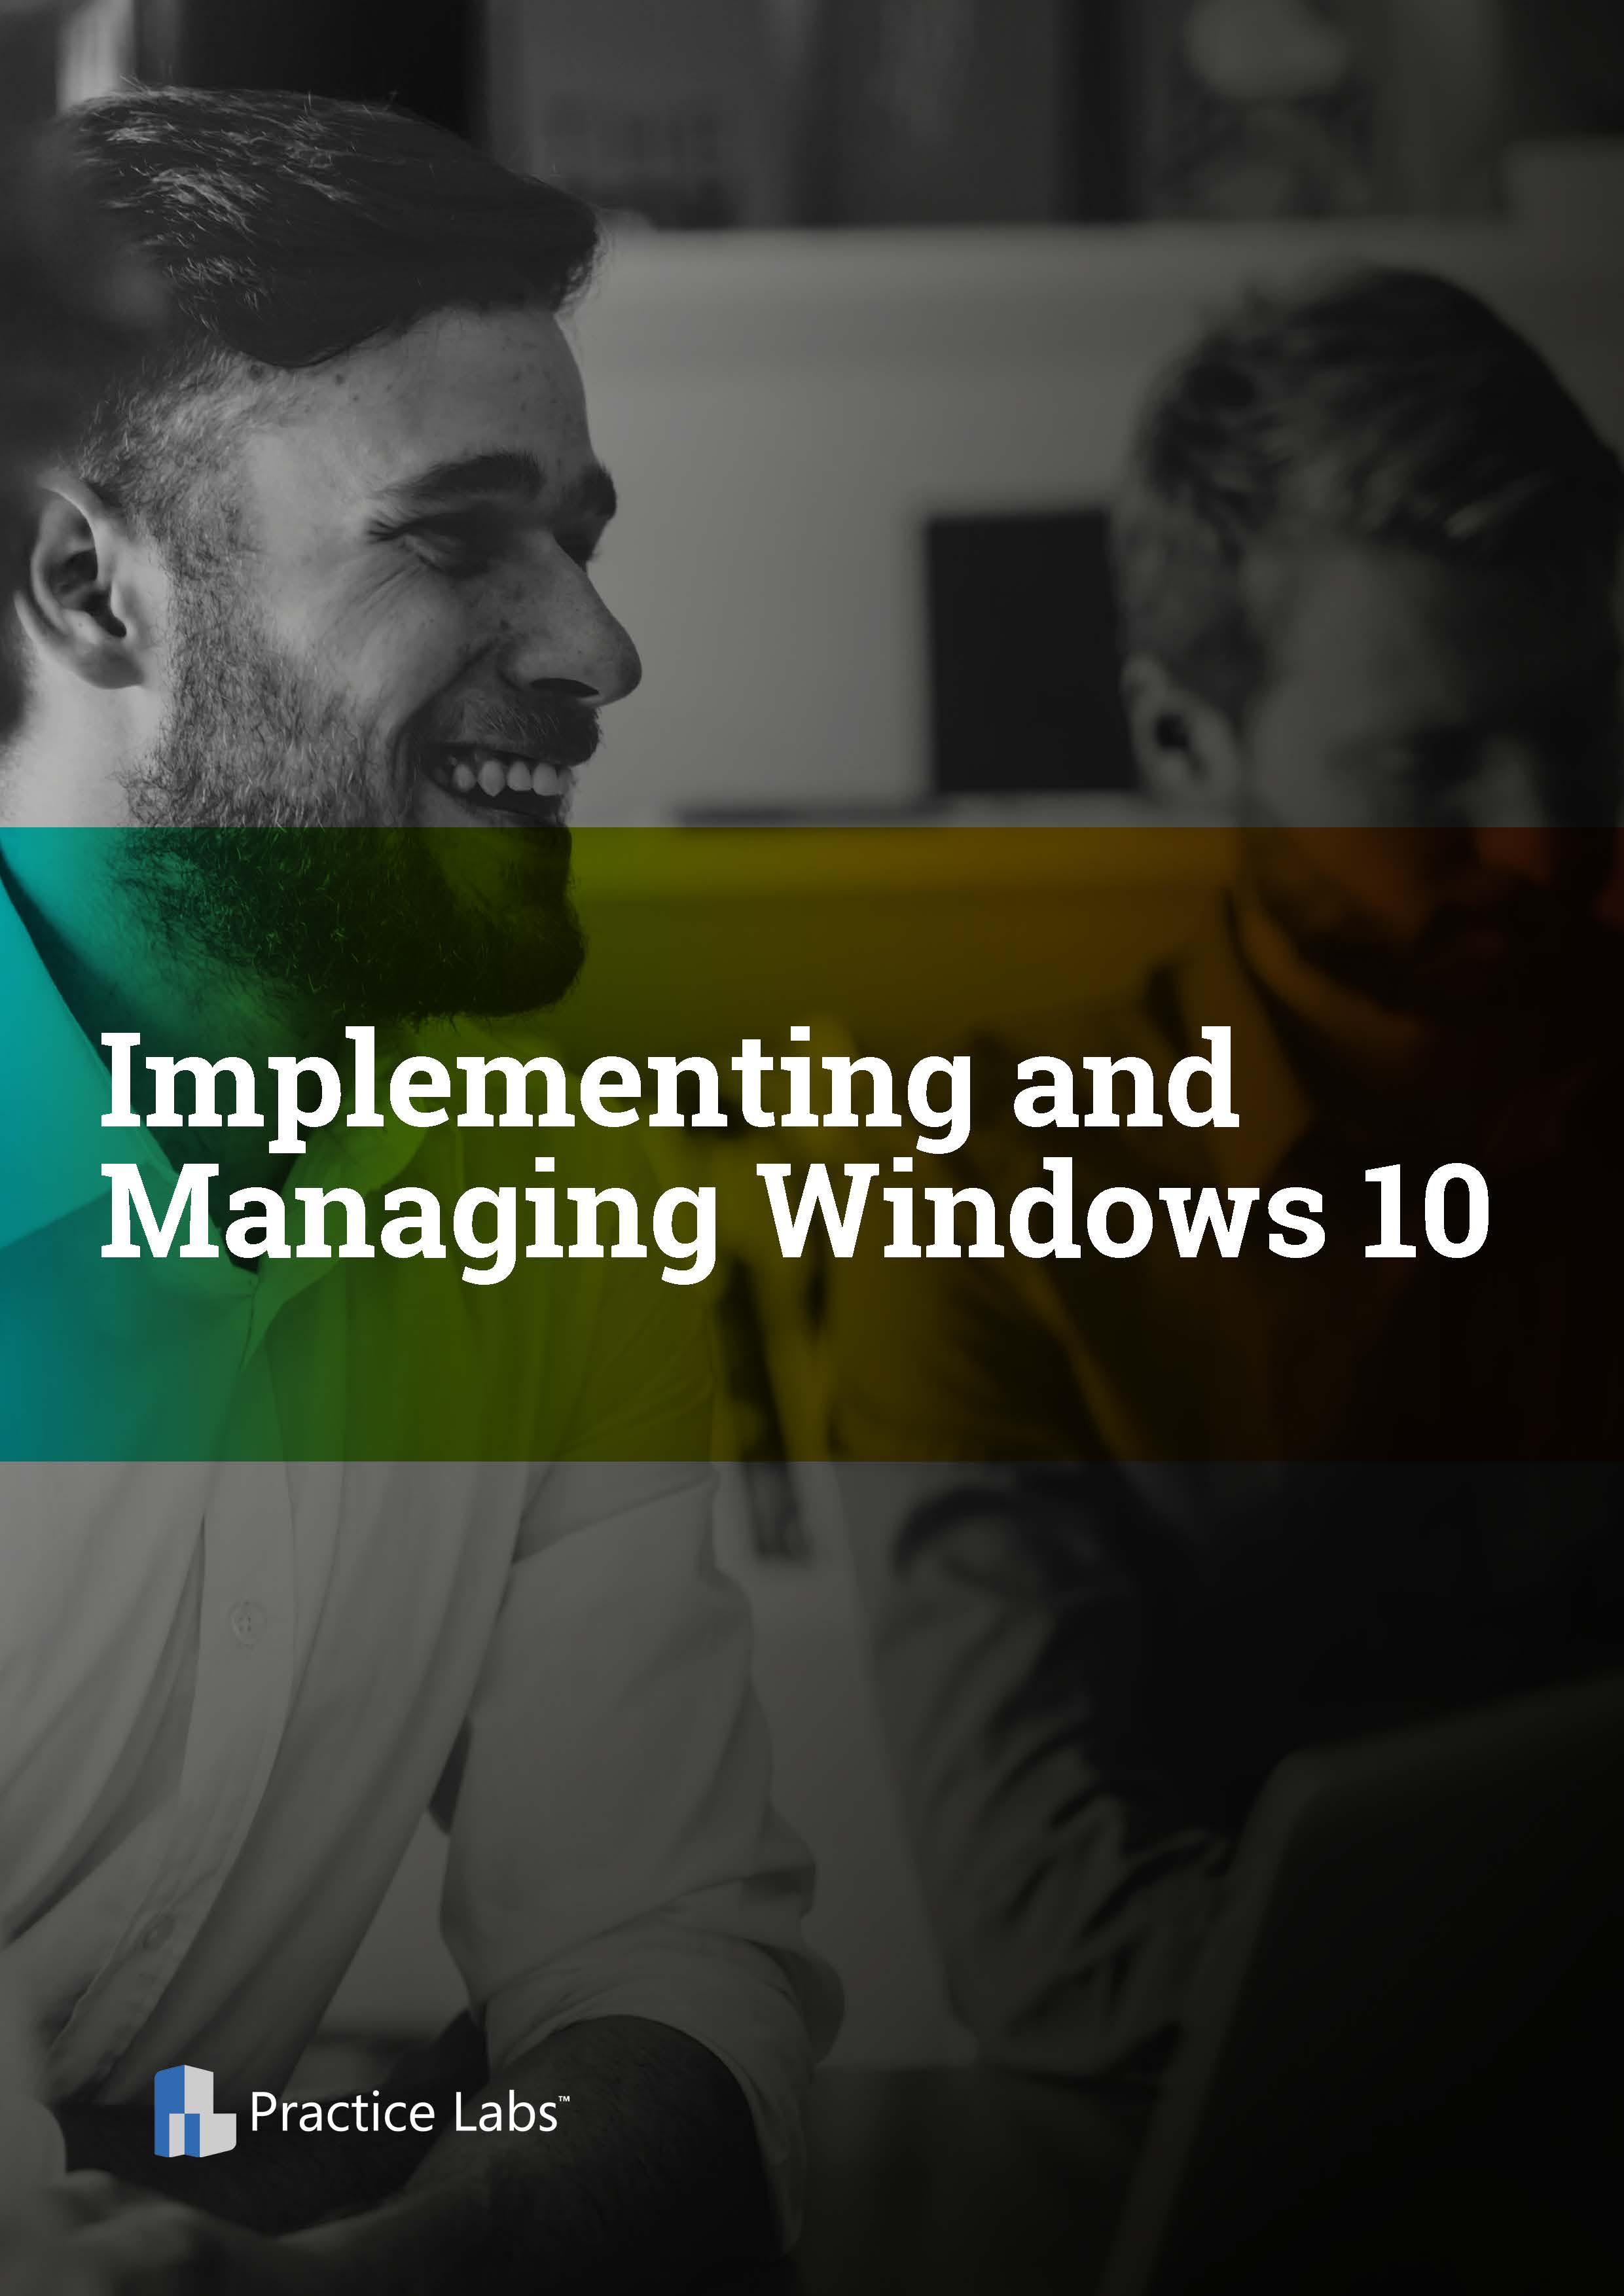 Implementing and Managing Windows 10